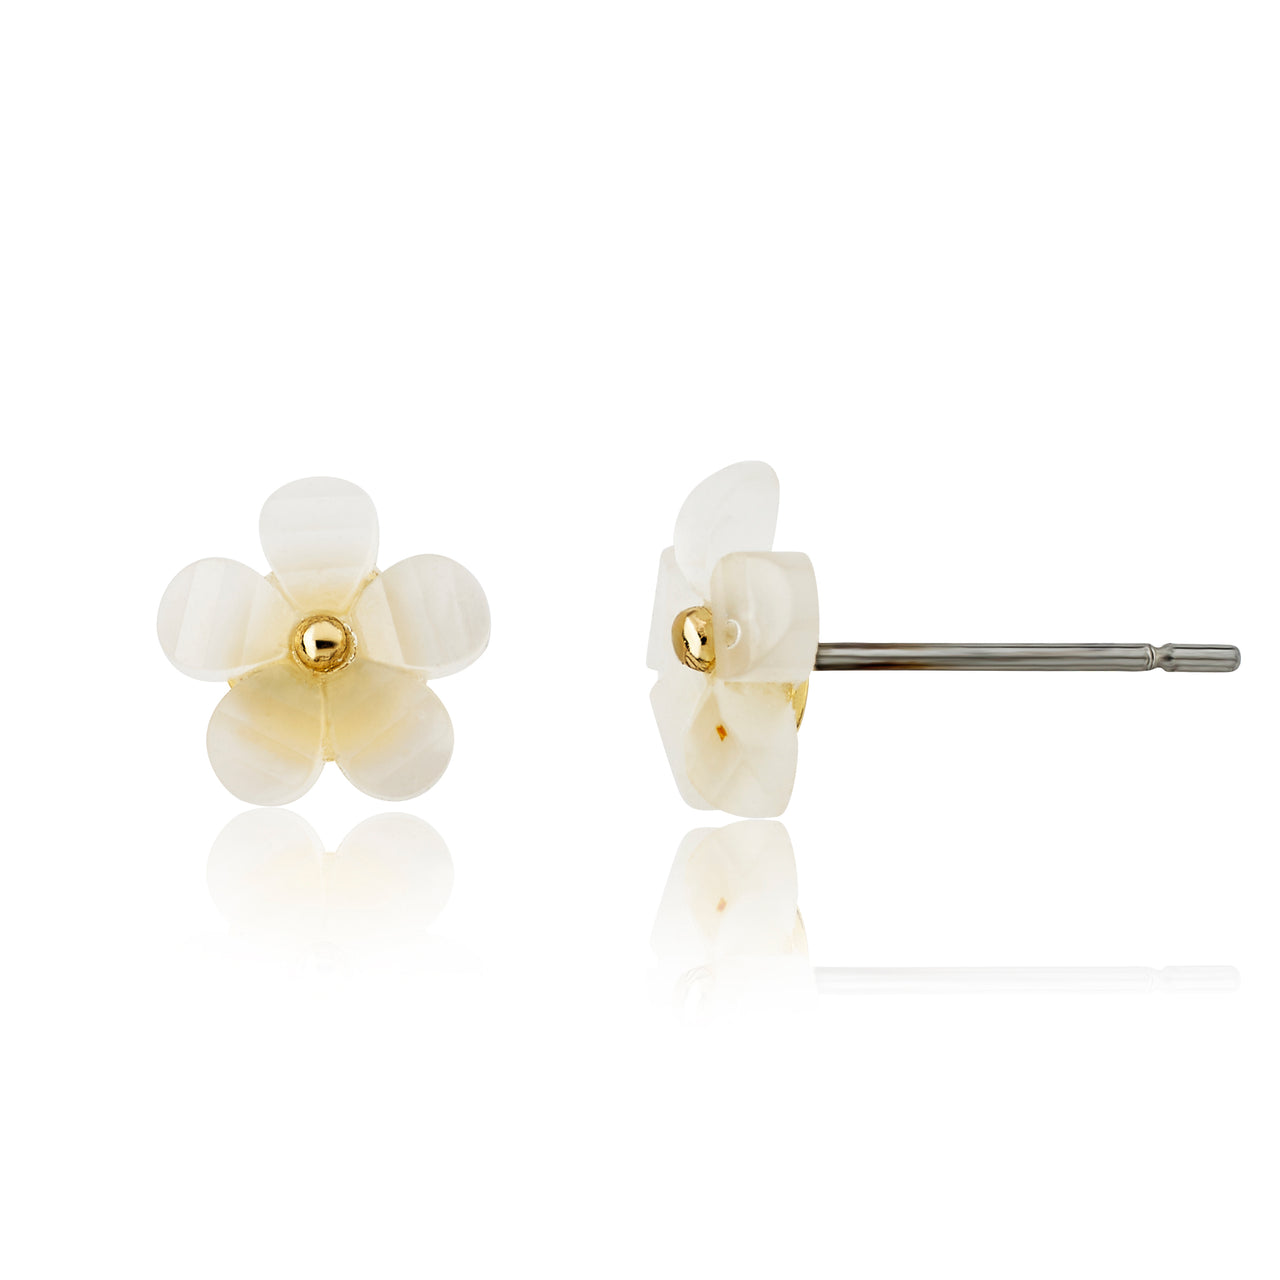 14K Gold Plated Stud Earring